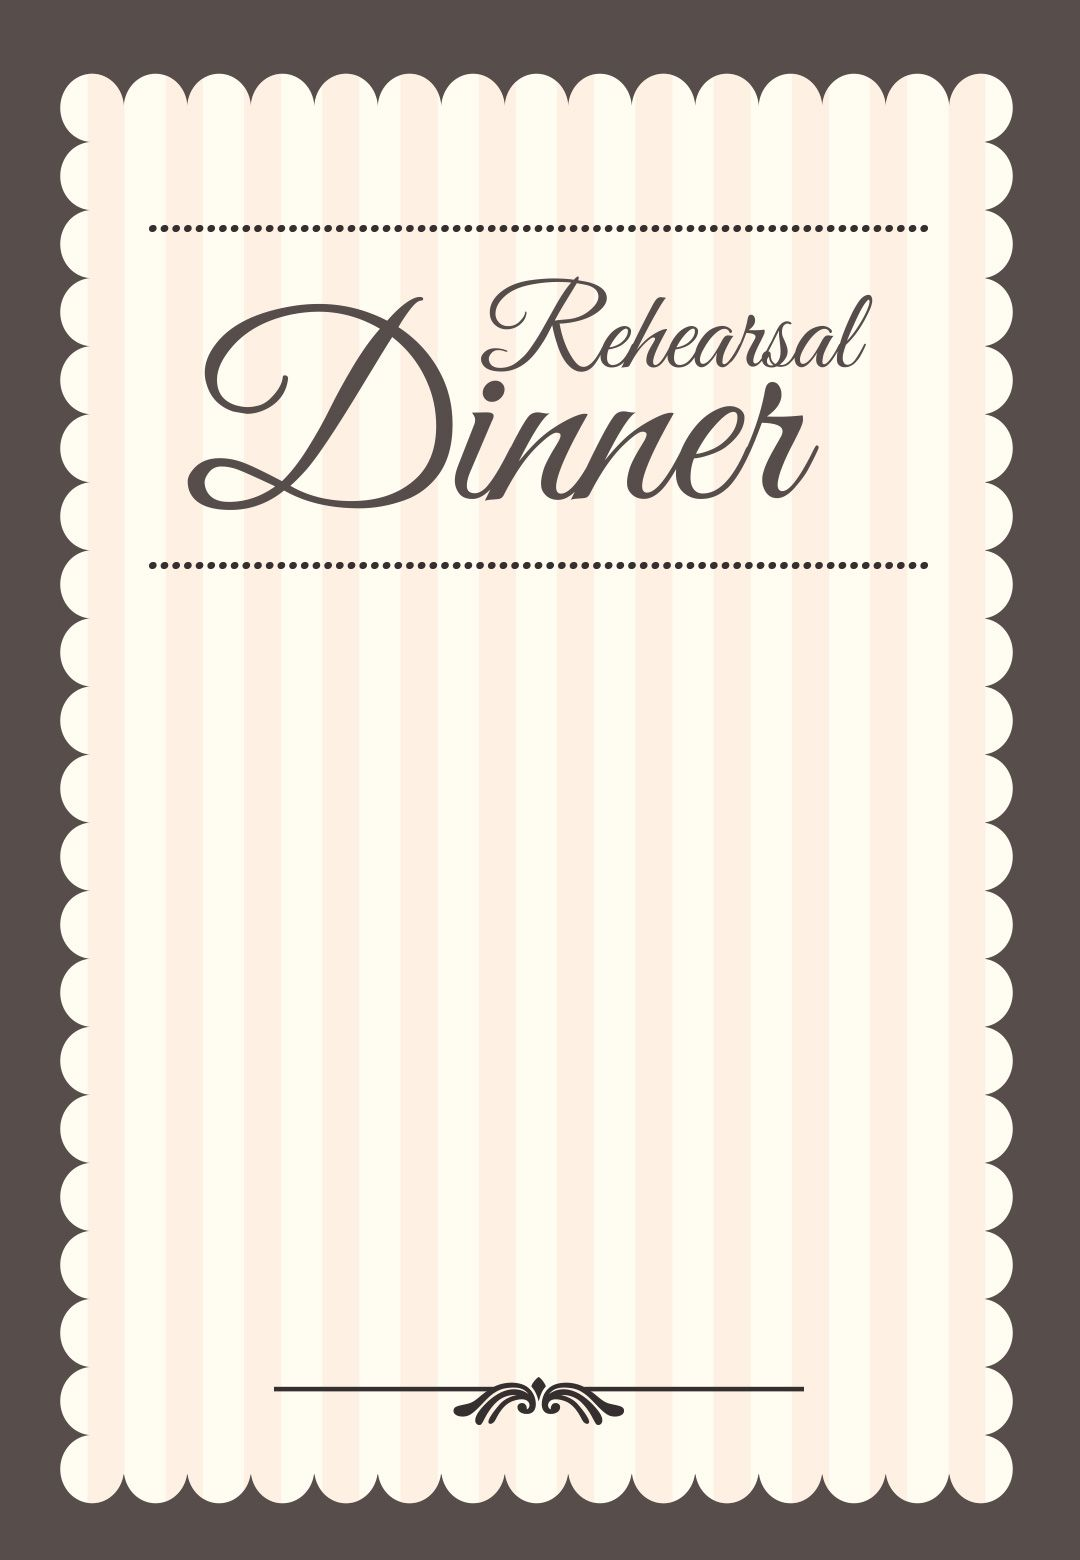 Stamped Rehearsal Dinner Free Printable Rehearsal Dinner Party – Dinner Party Invitation Templates